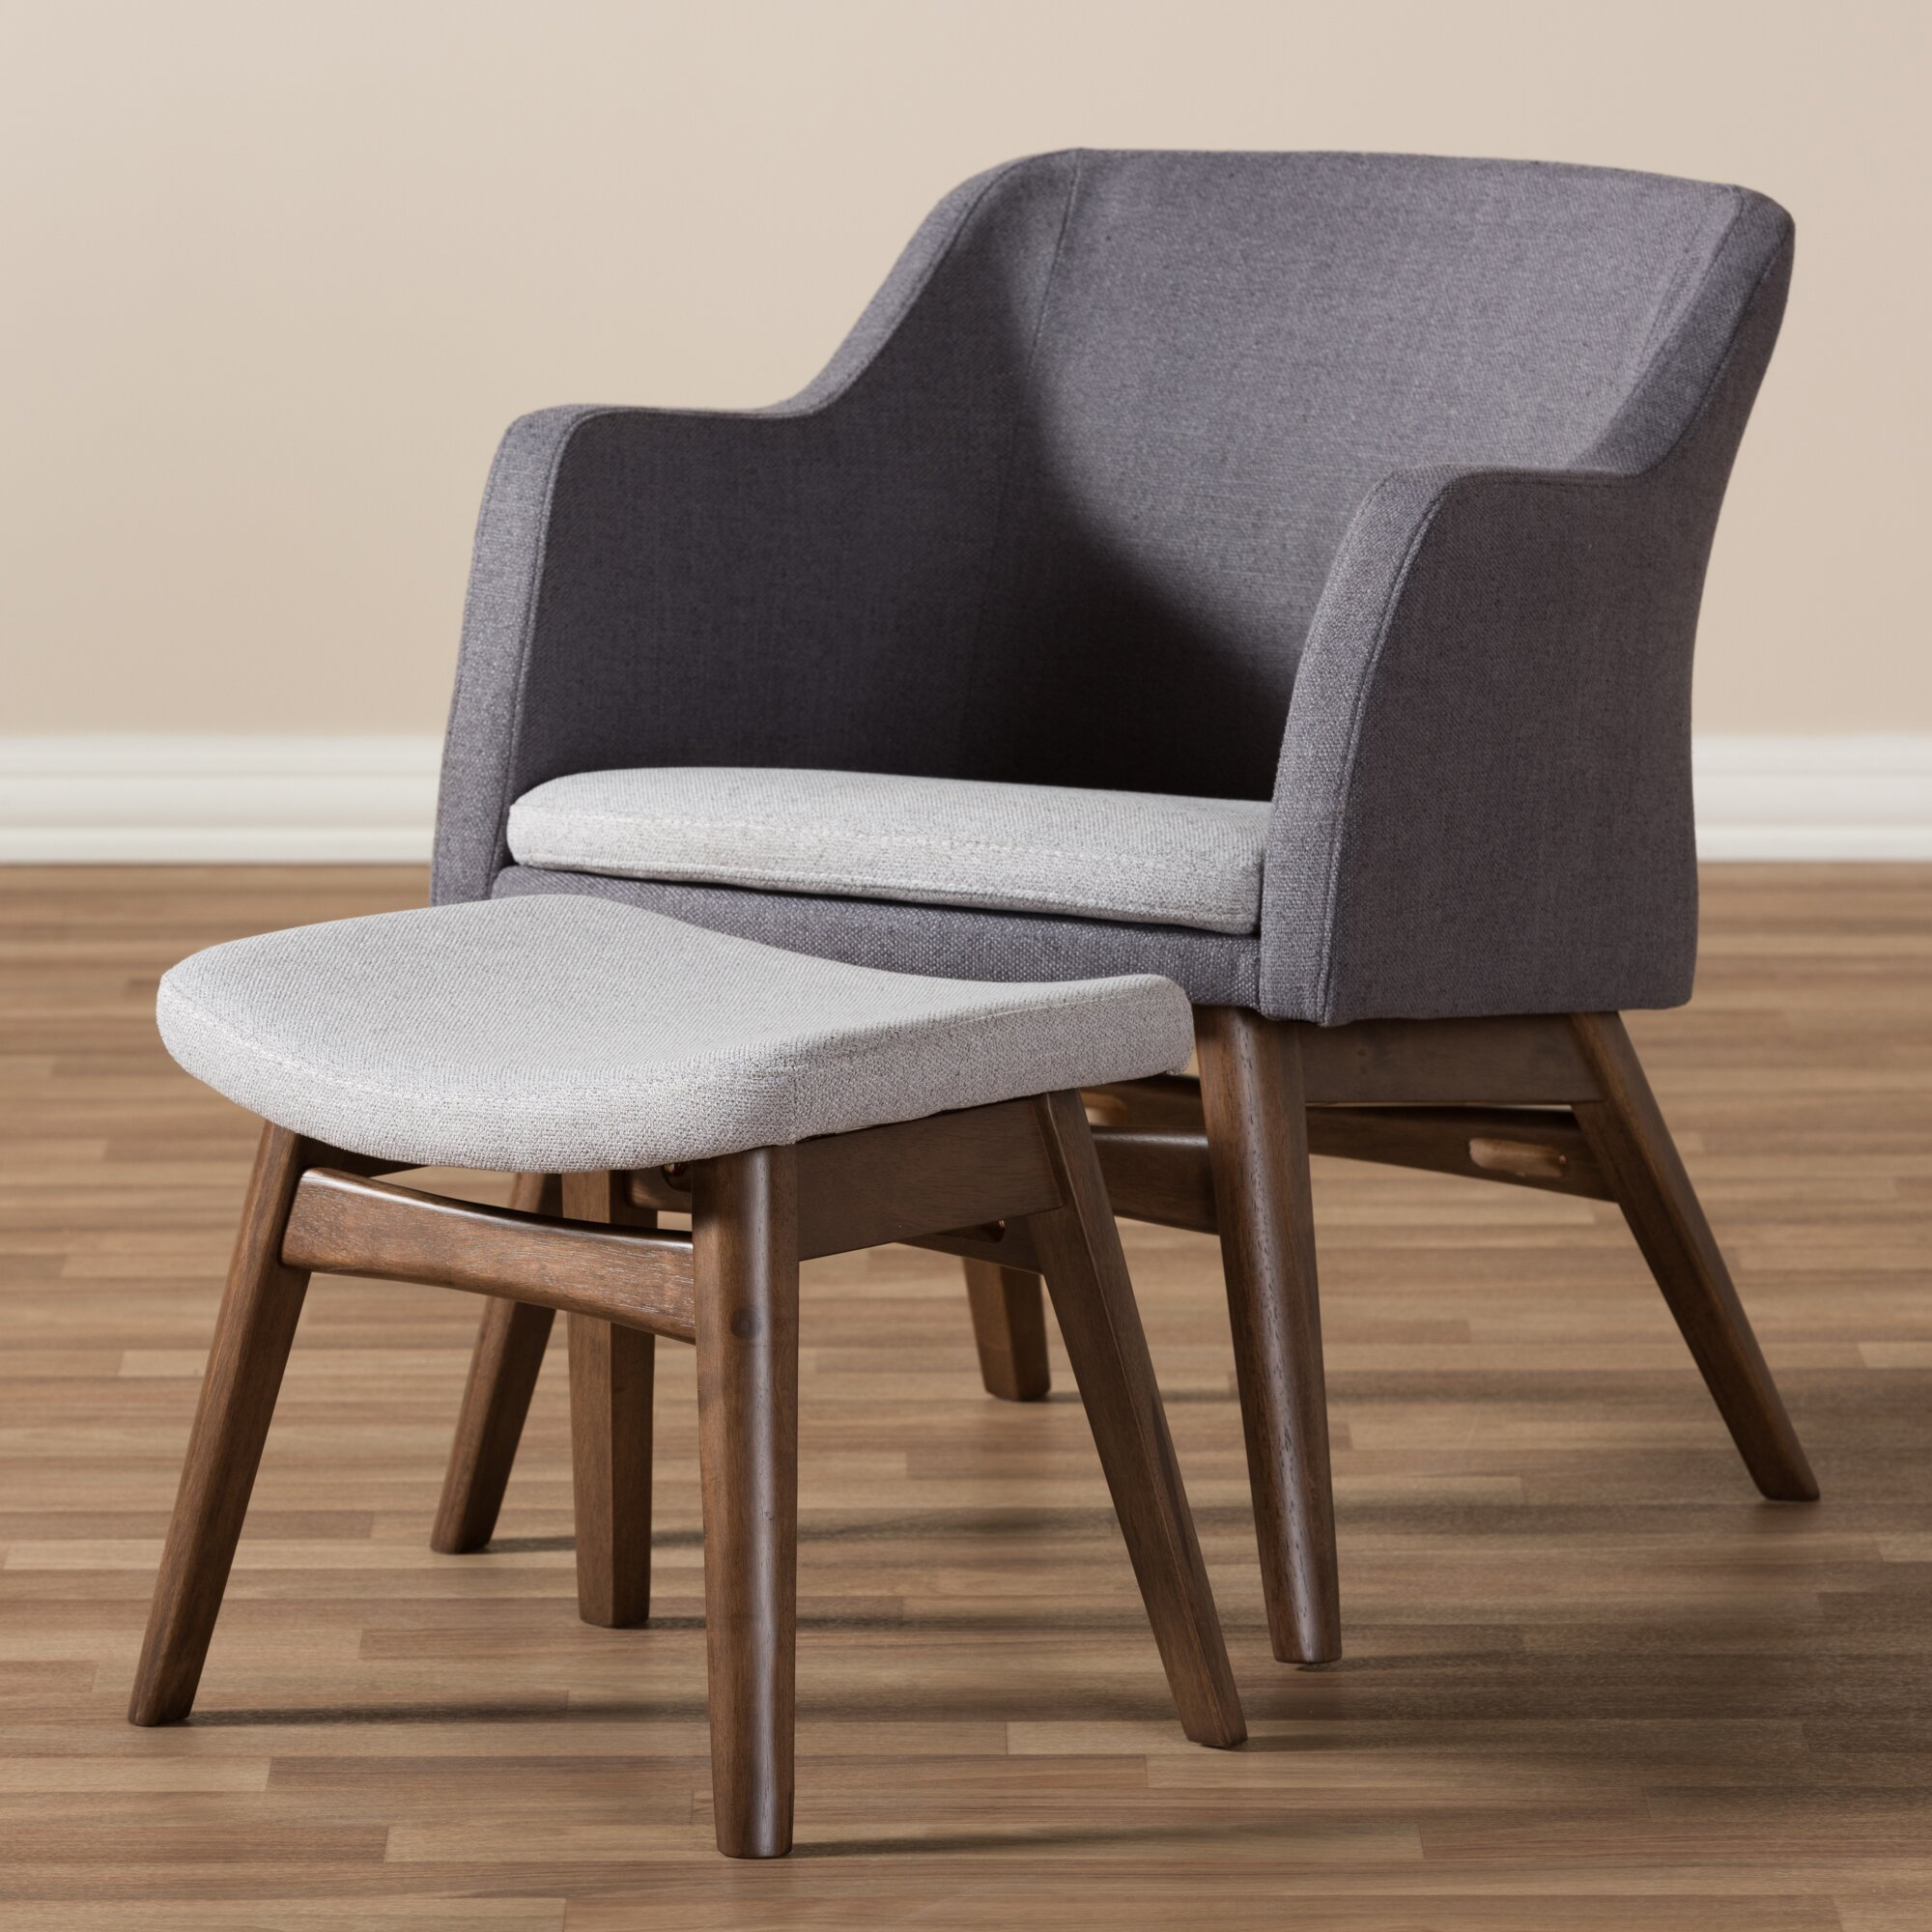 Wholesale interiors victoria mid century modern lounge chair and ottoman reviews wayfair - Mid century modern chair and ottoman ...